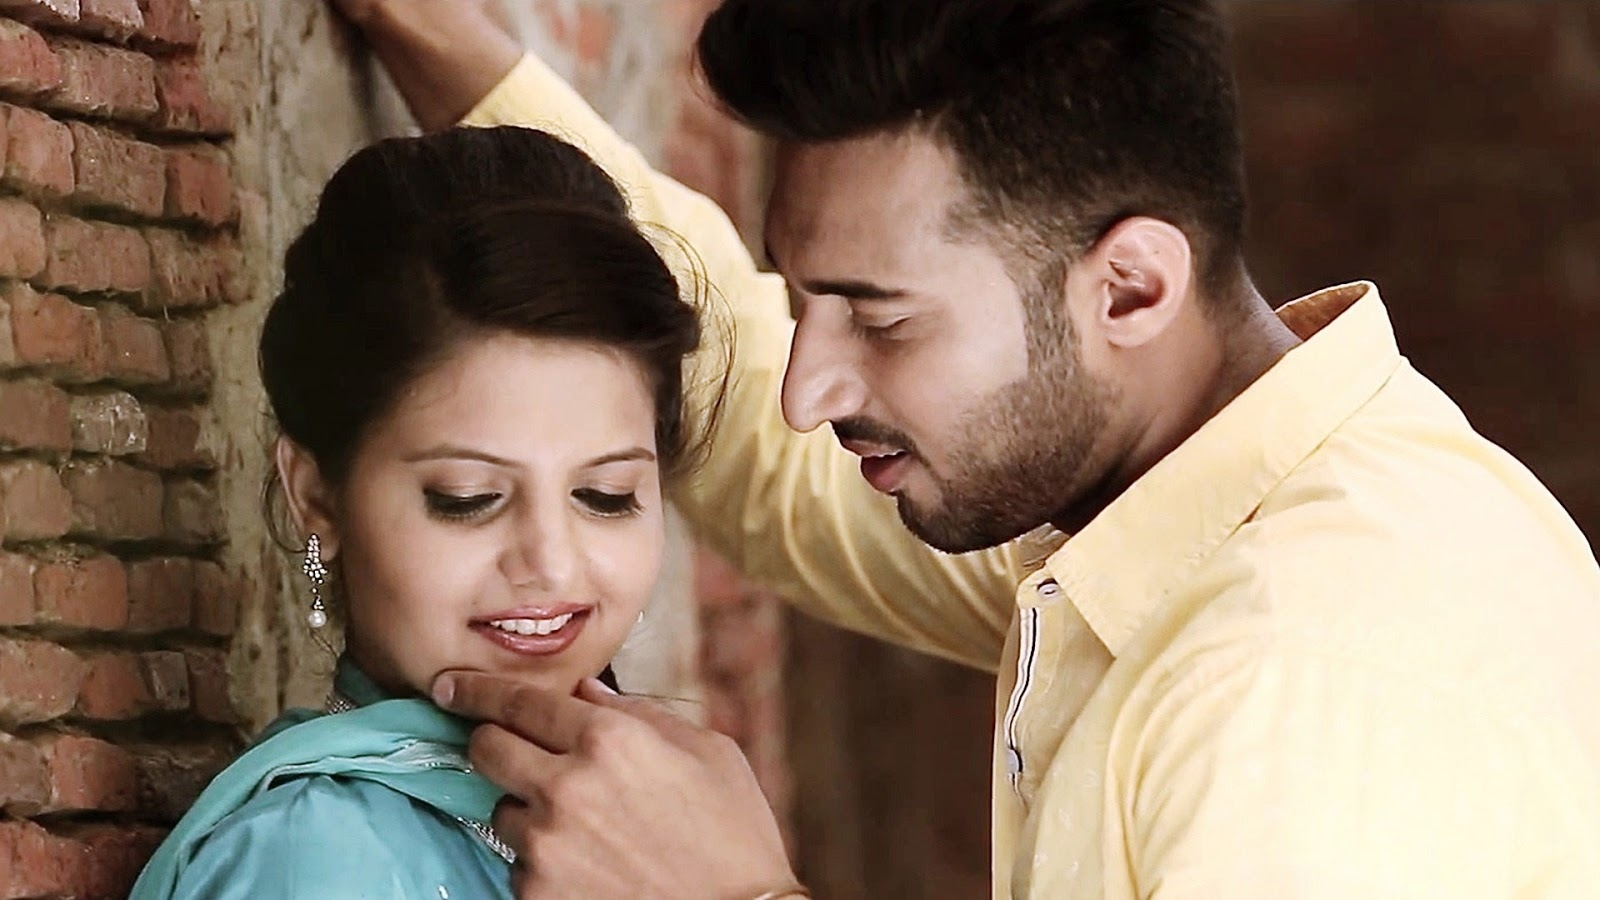 Best-hd-images-of-punjabi-love-couple-Punjabi-Couple-Hd-Pictures-Live-Hd-Hq-wallpaper-wpc9002783